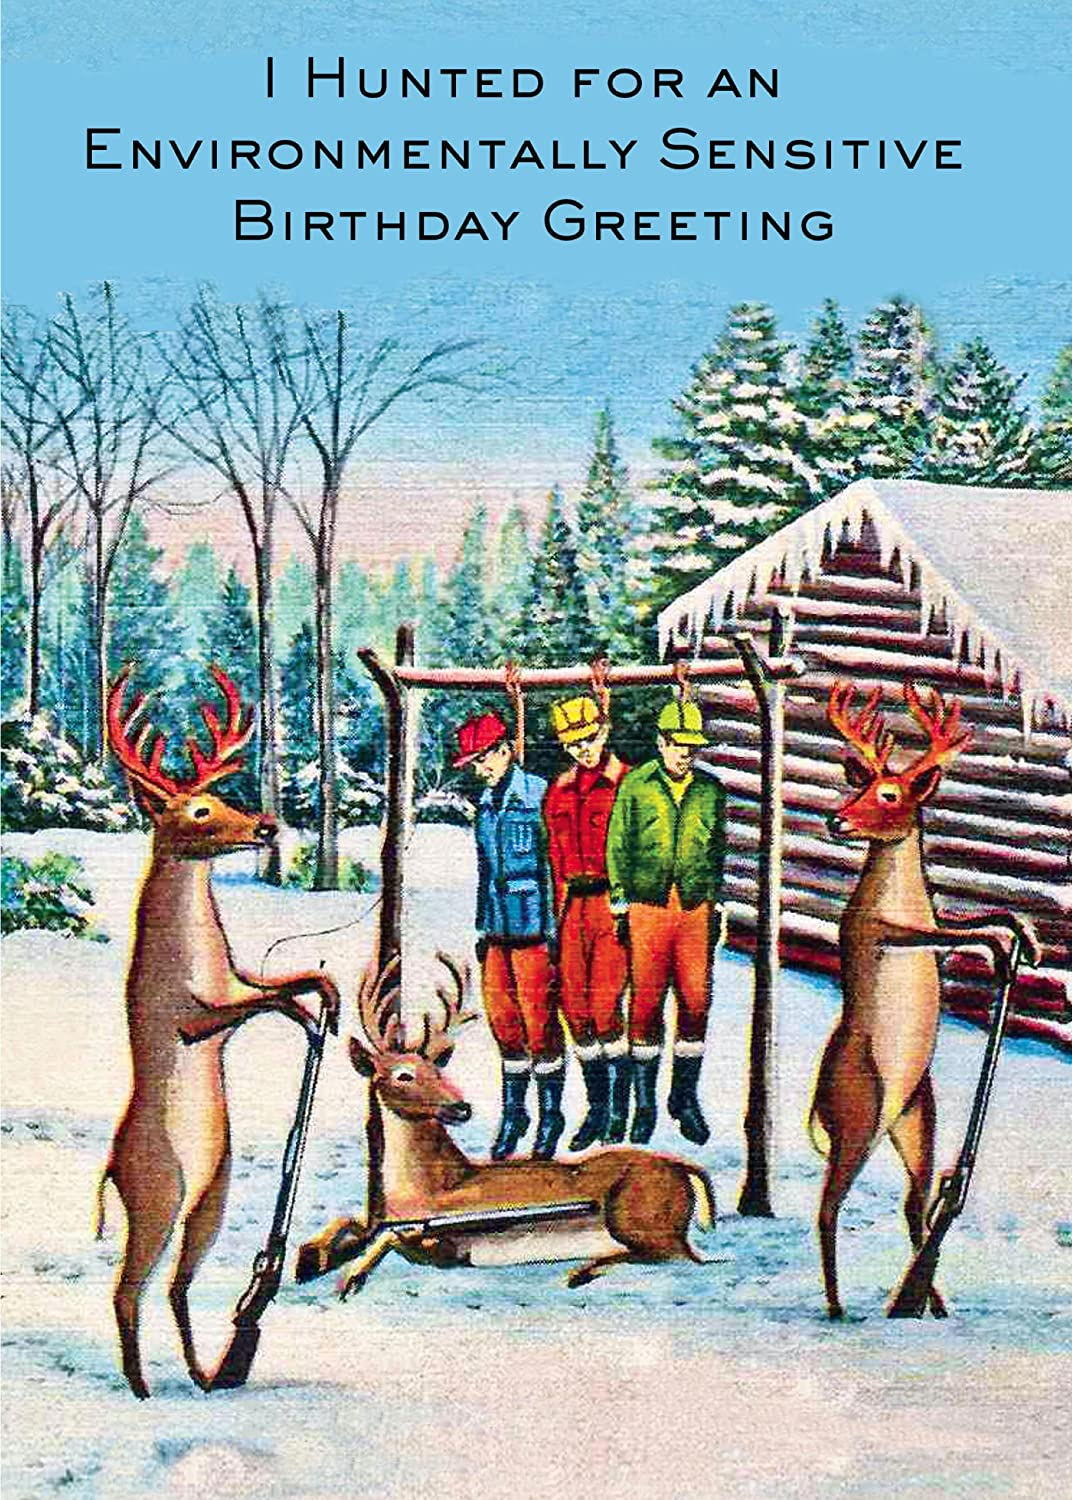 Amazon Com 6 Pack Deer Hunting The Hunters Xxth Century Birthday Card 20205 Birthday Greeting Cards Office Products